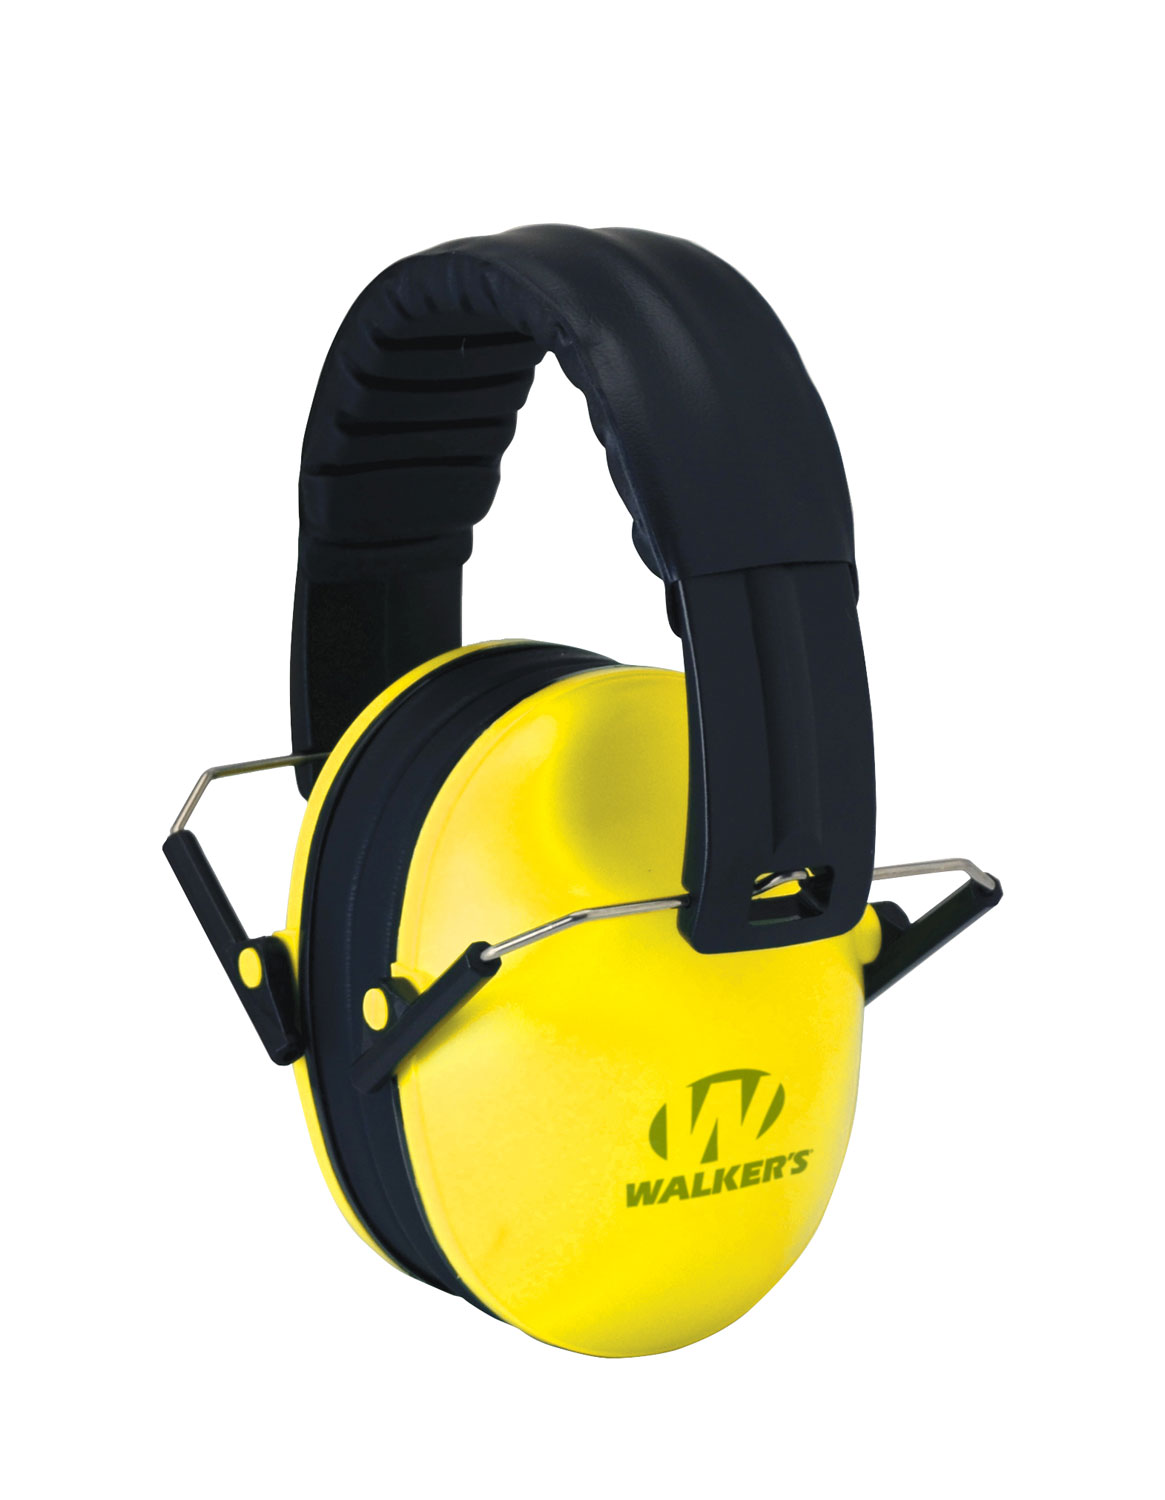 Walkers GWP-FKDM-YL Passive Baby & Kids Folding Polymer 22 dB Over the Head Yellow Ear Cups w/Black Band